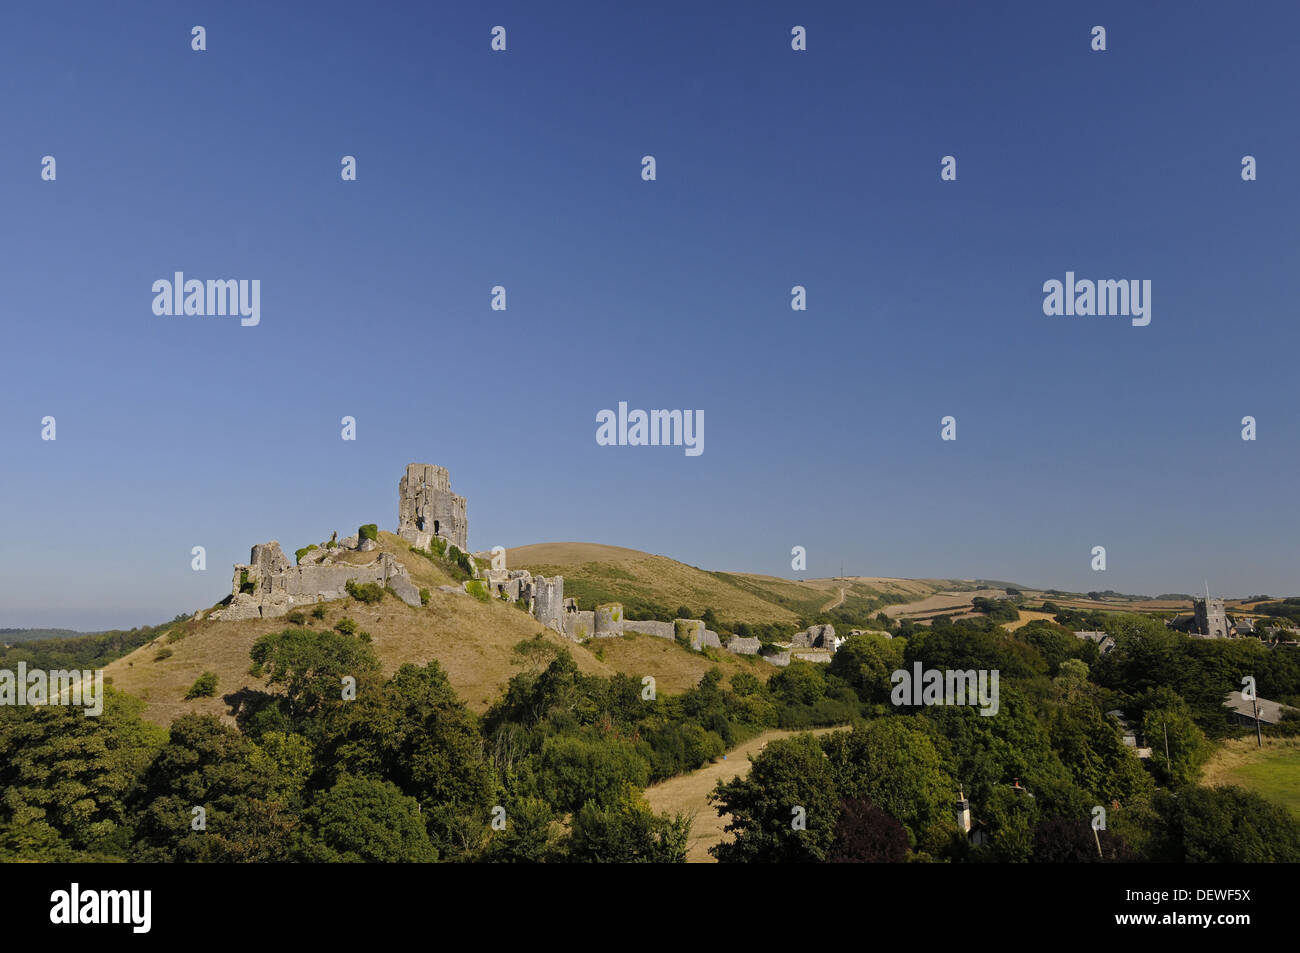 View over trees to ruins of Corfe Castle with village of Corfe in background , Isle of Purbeck Dorset England Stock Photo